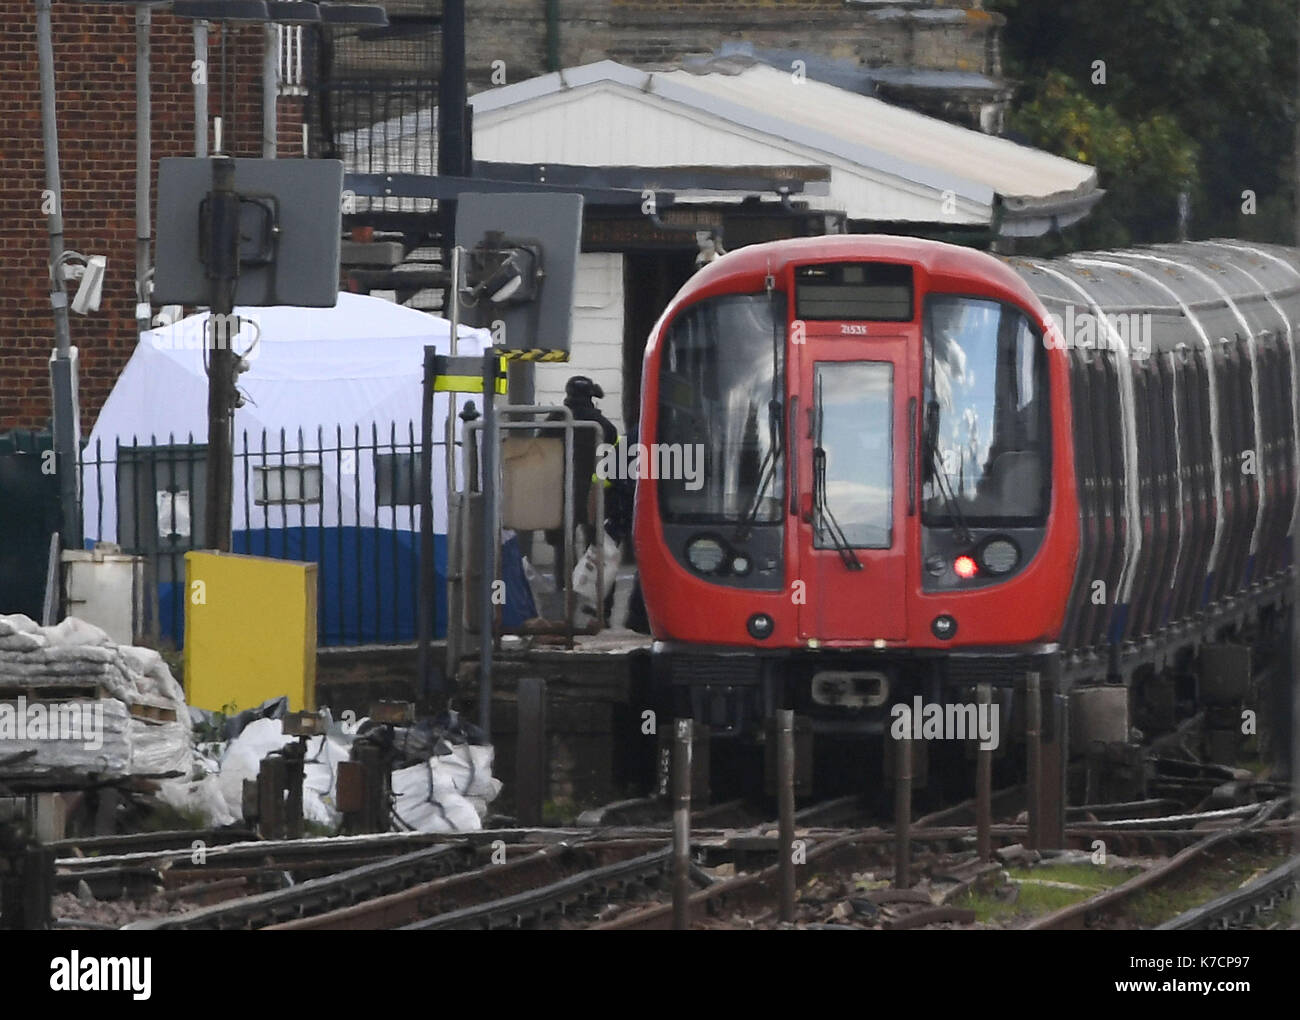 A forensic tent on the platform at Parsons Green station in west London after Scotland Yard & A forensic tent on the platform at Parsons Green station in west ...